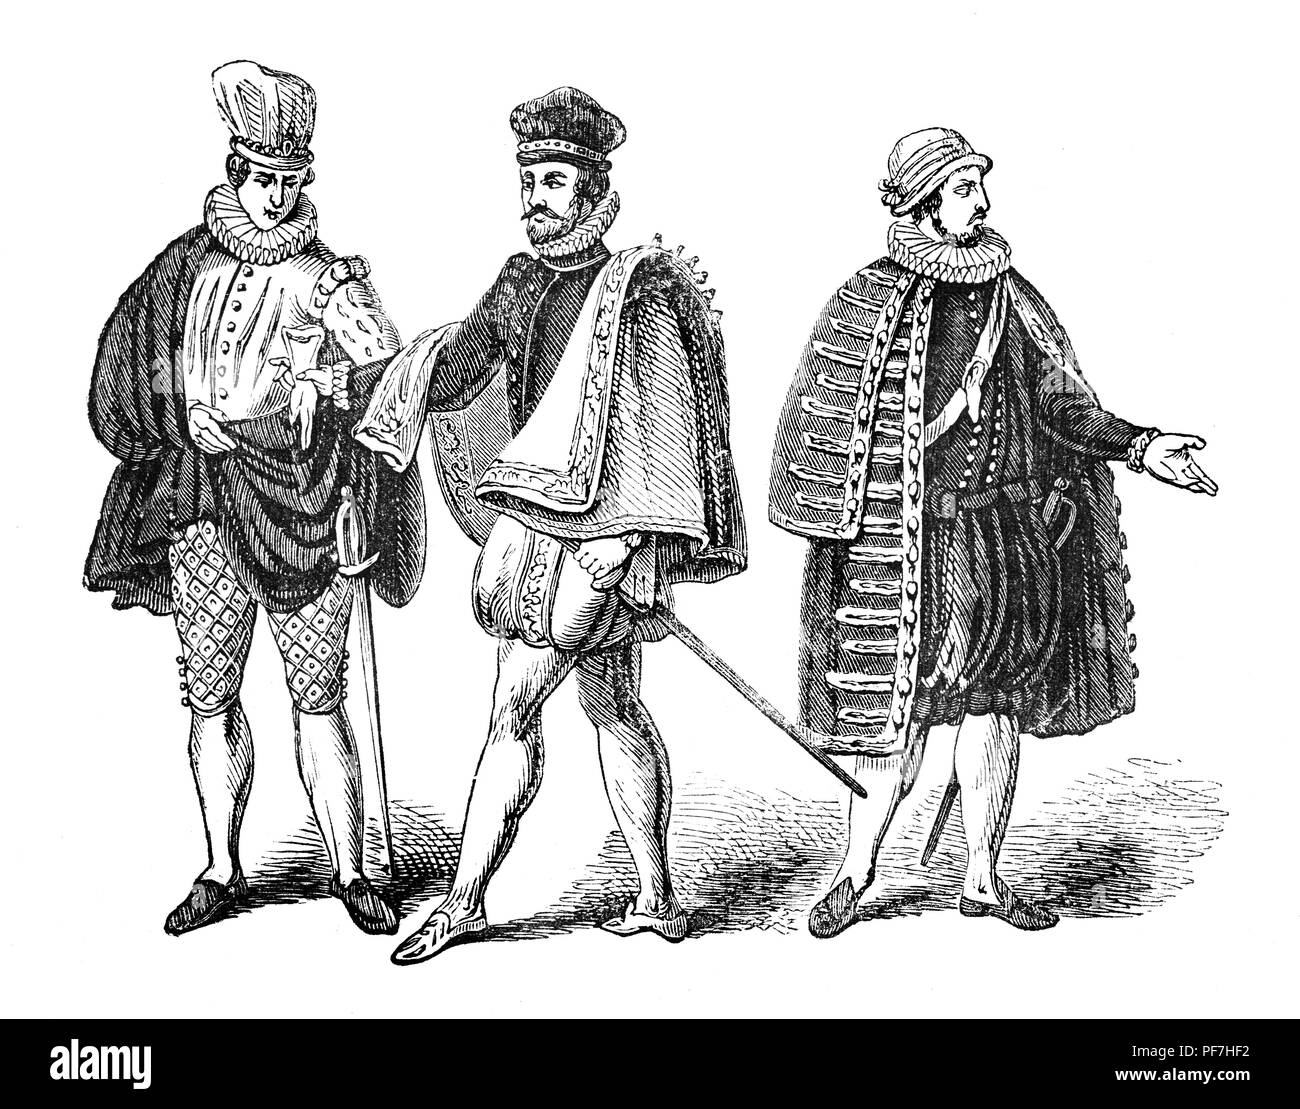 Fashion: For overseas men during the reign of Queen Elizabeth I. From left - Venetian, Spanish and French. - Stock Image